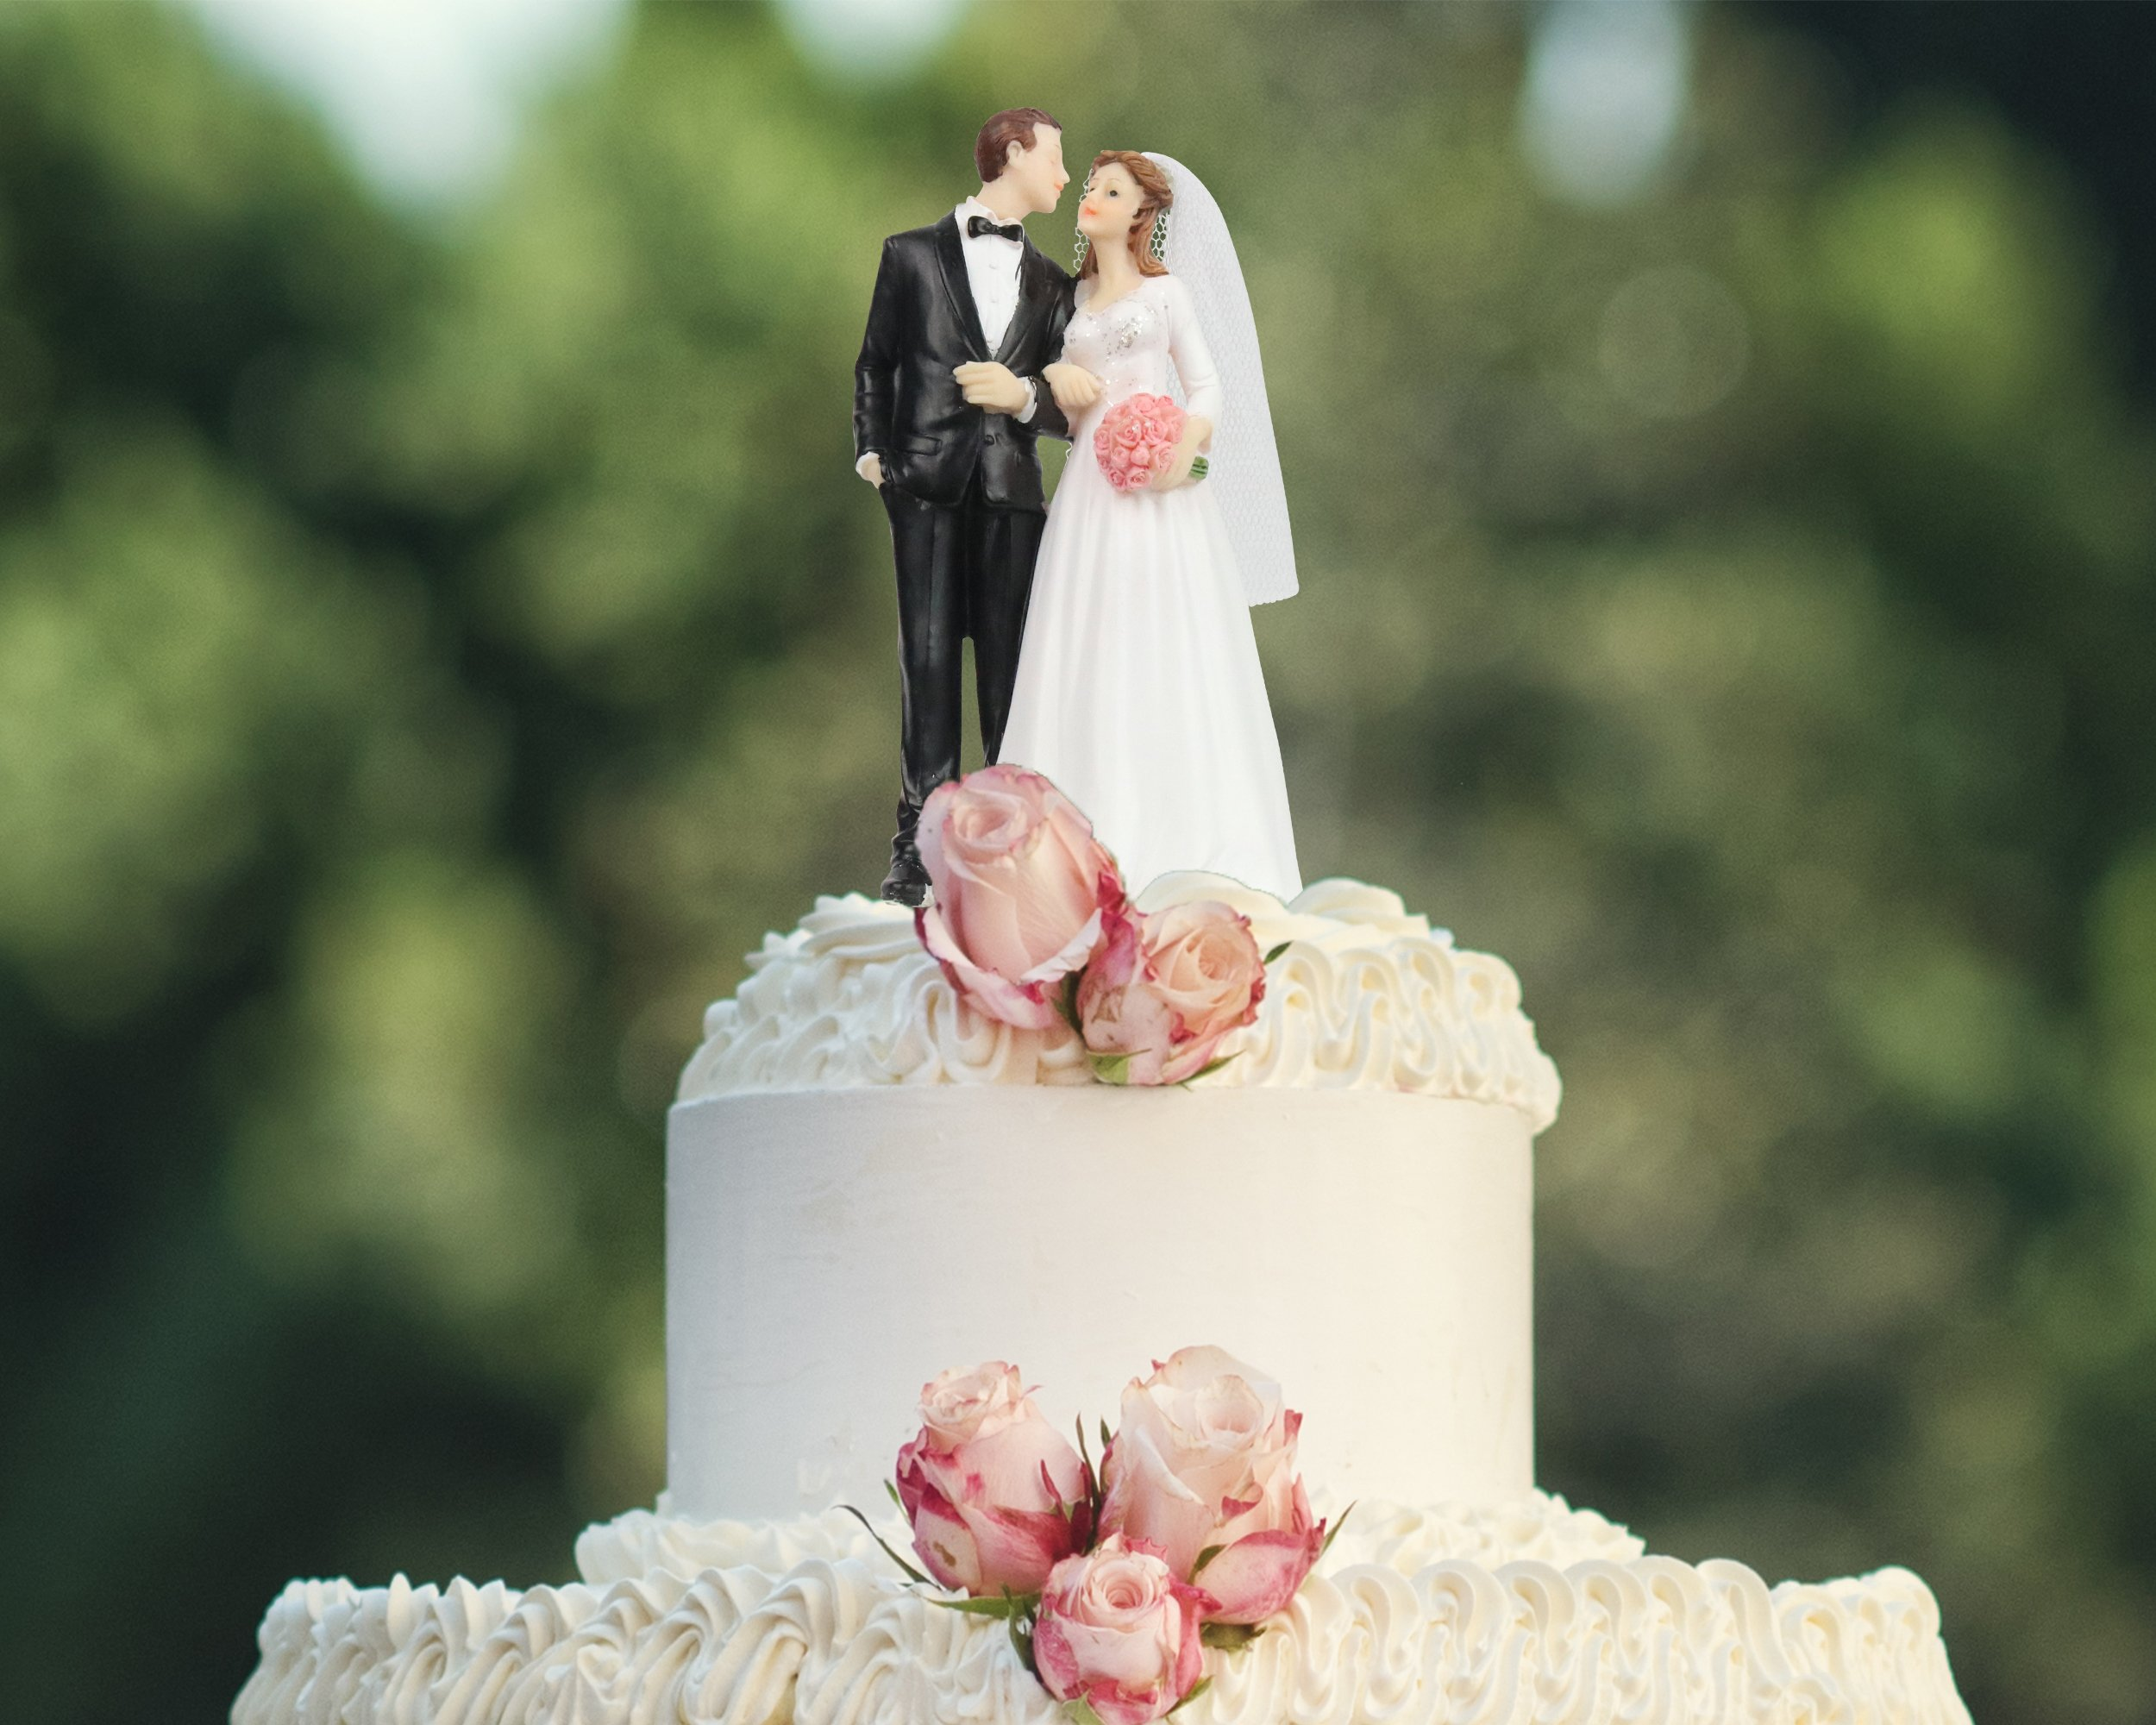 Wedding Cake Topper Funny & Romantic Groom And Bride holding hands with flowers Figurine | Toppers For Wedding Cakes Decoration | Hand Painted & Unique Figurines by zy retail (Image #6)